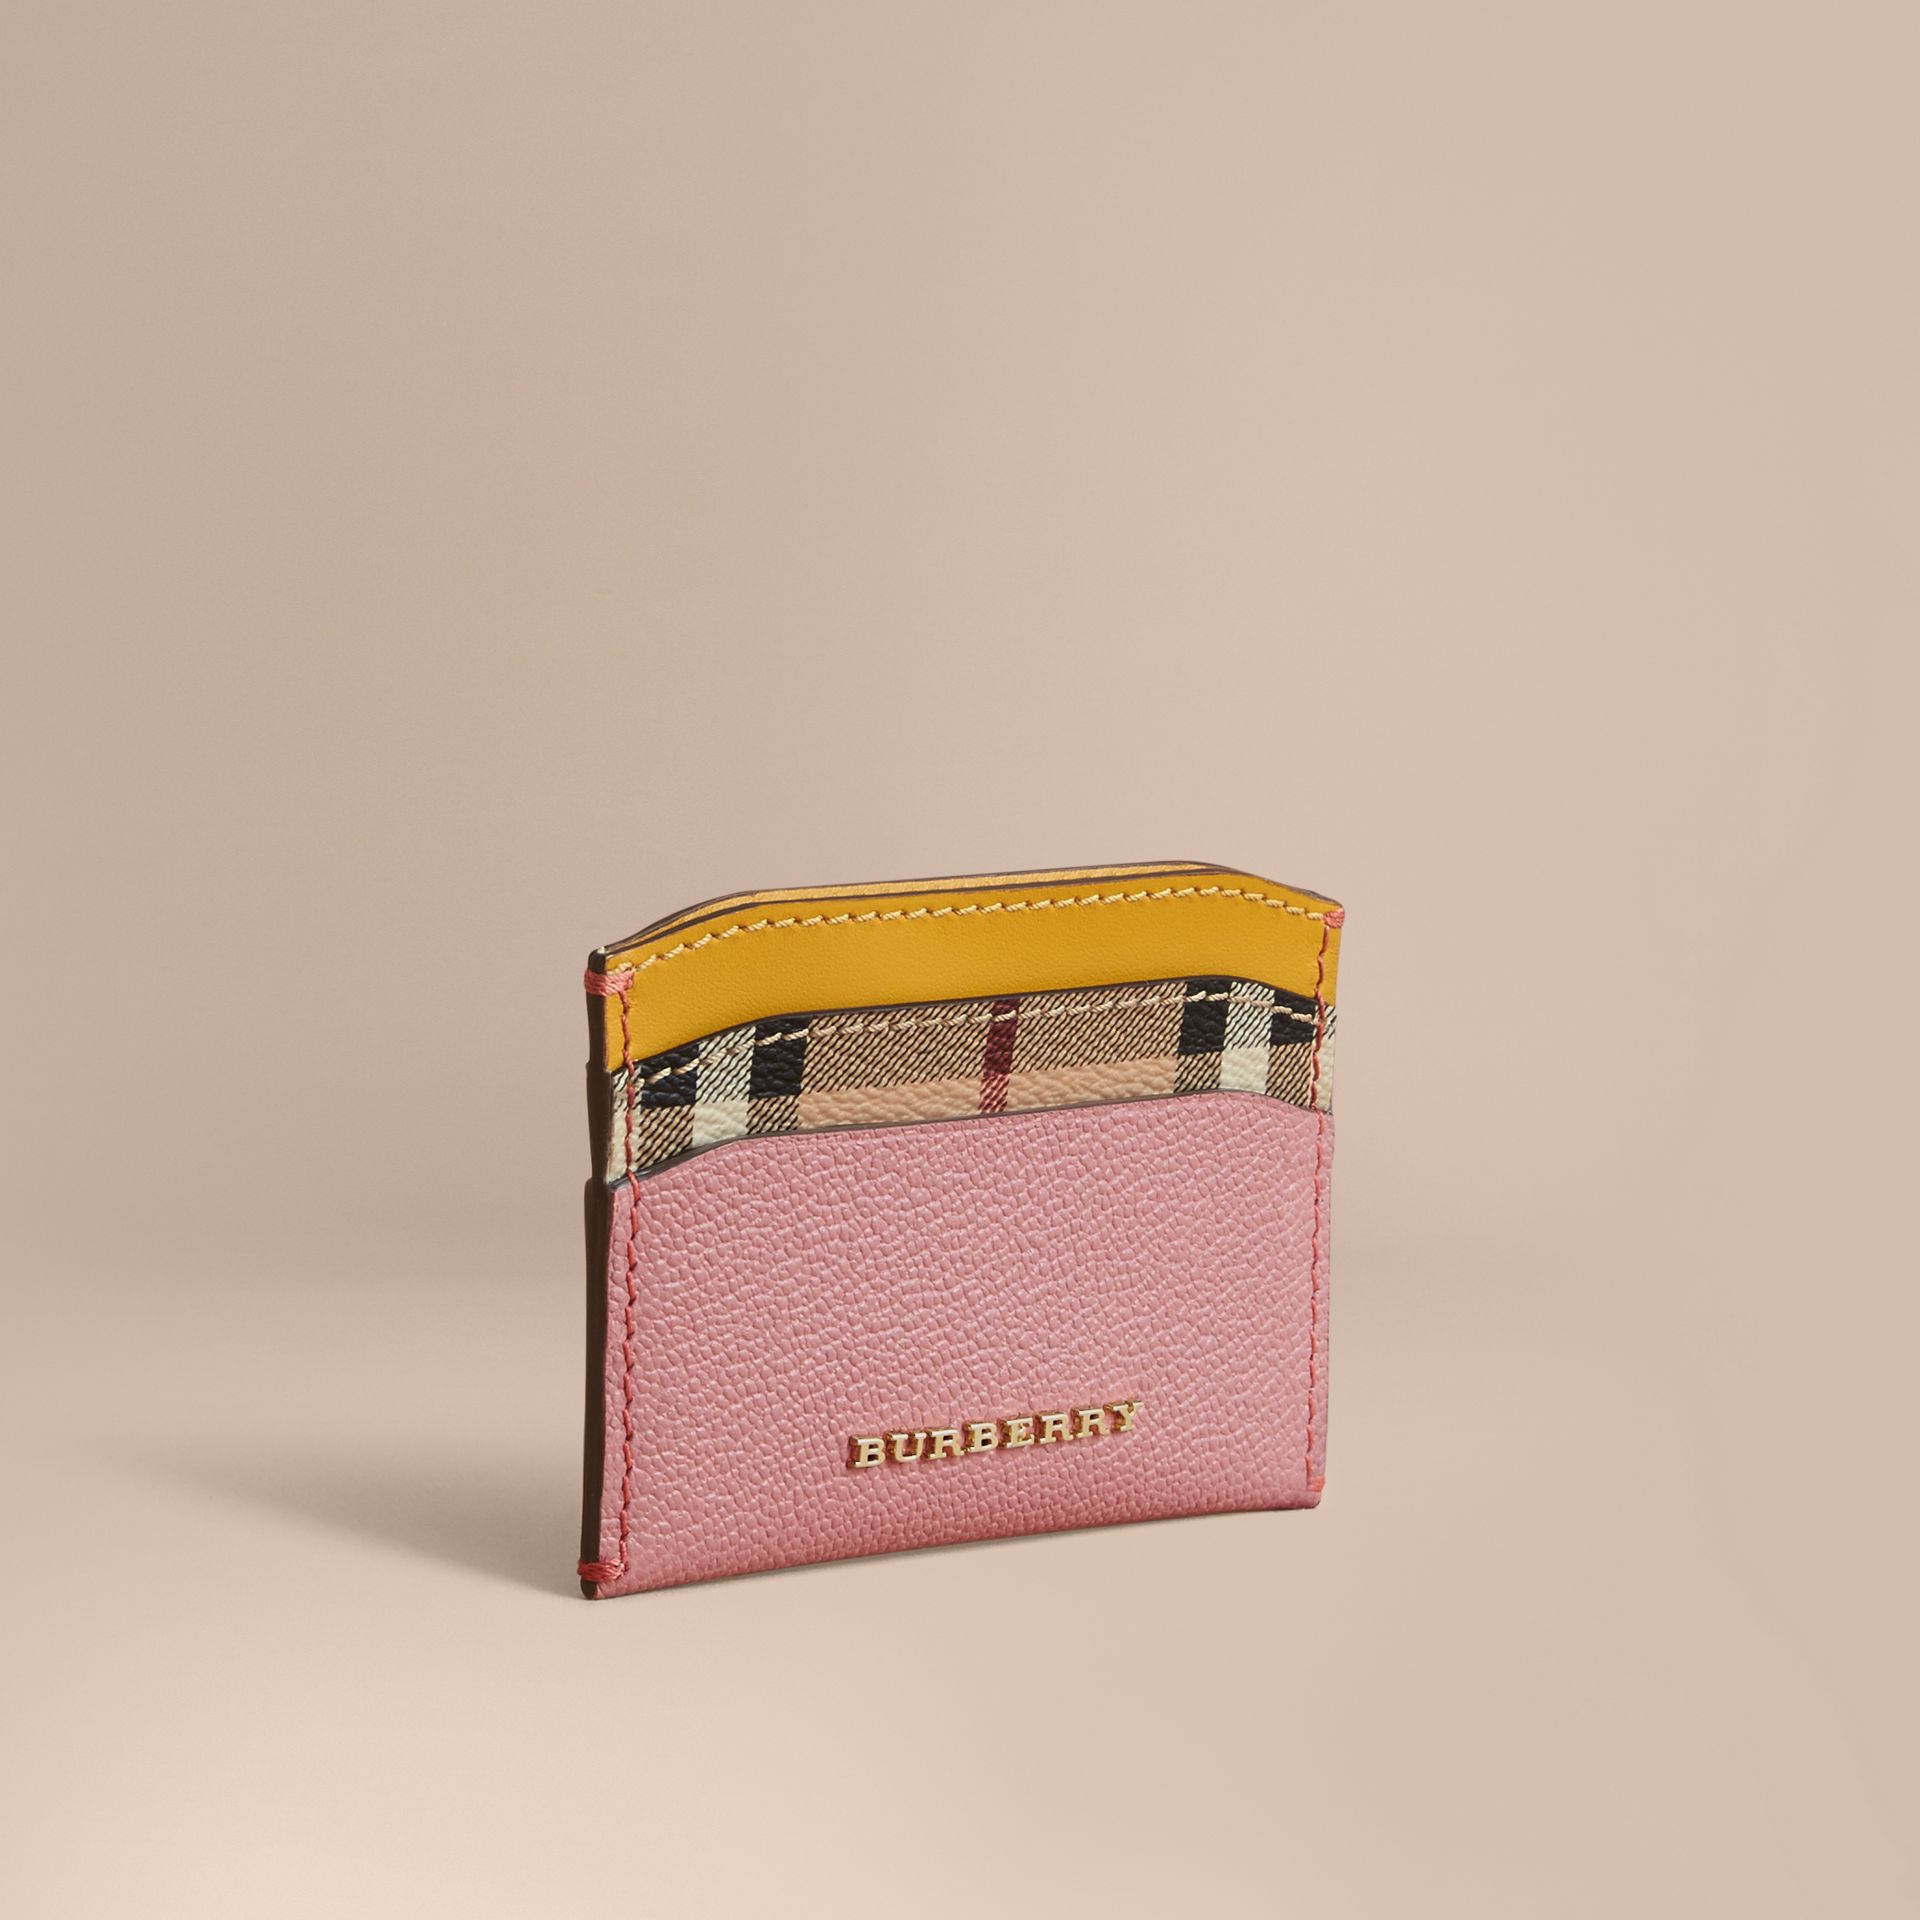 Colour Block Leather and Haymarket Check Card Case in Dusty Pink / Multi - Women | Burberry Hong Kong - gallery image 1